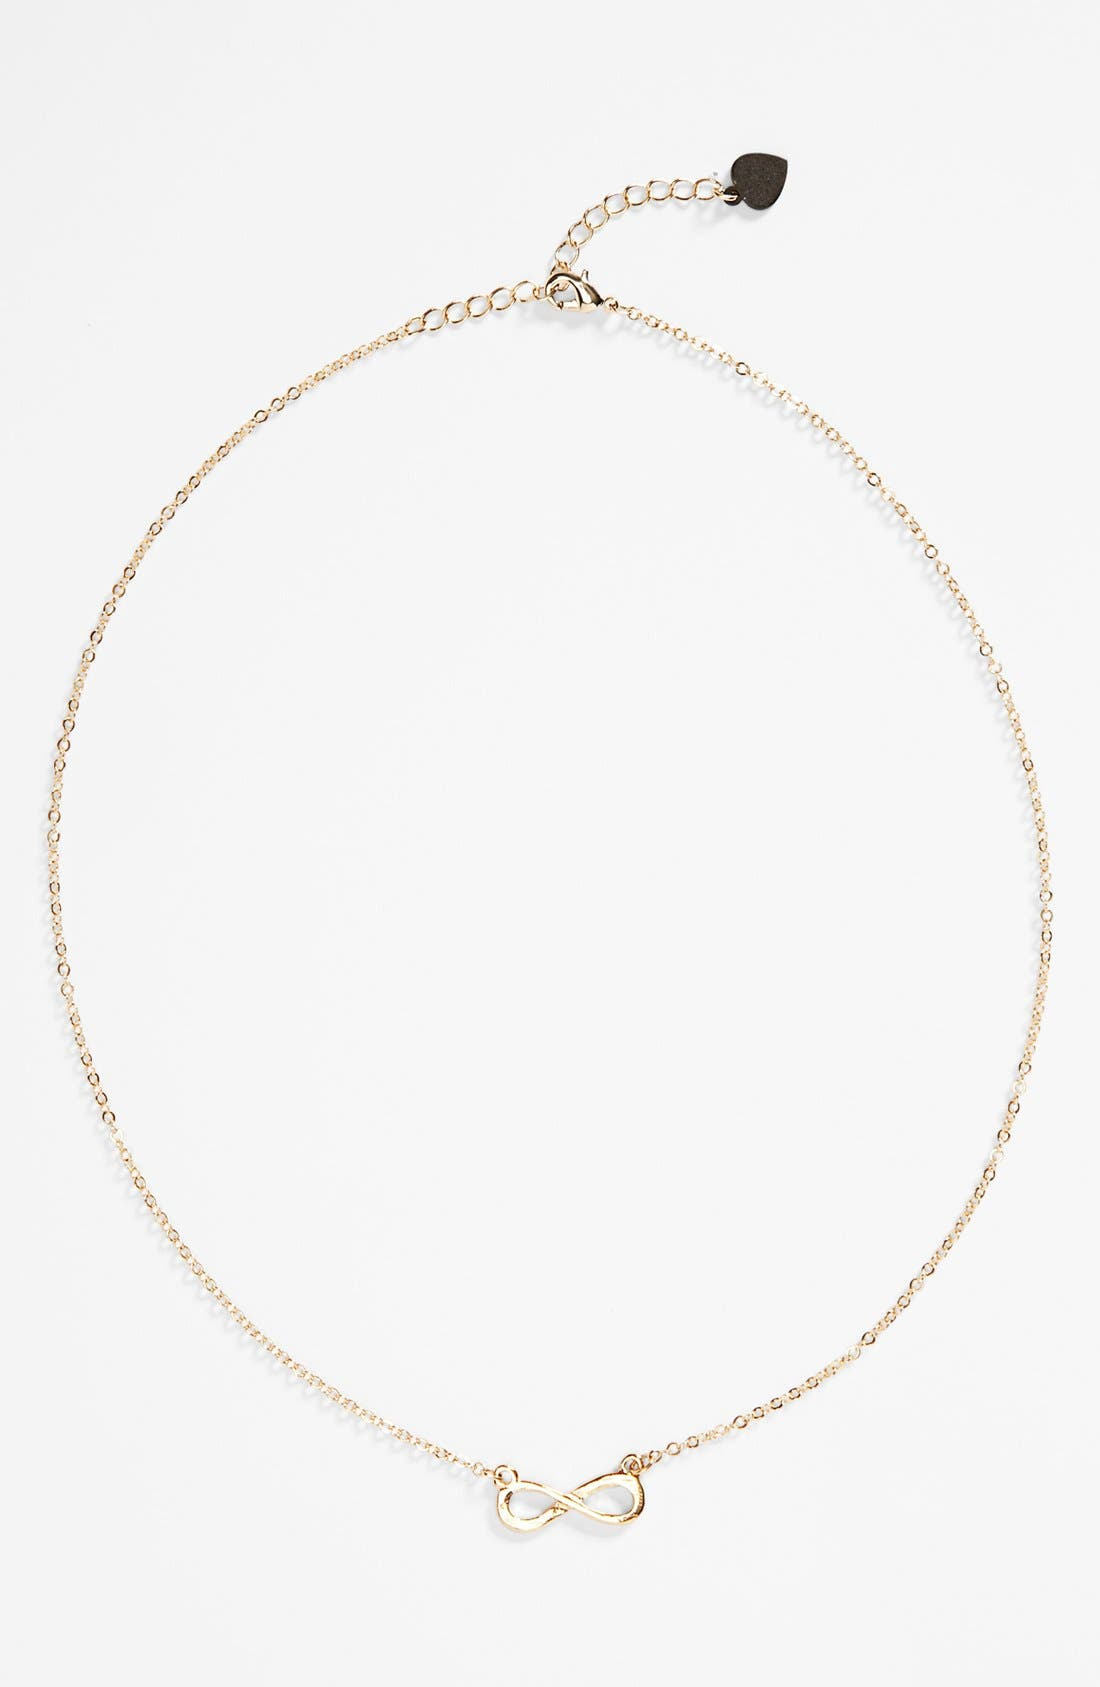 Alternate Image 1 Selected - Bonnie Jonas 'Infinity' Chain Necklace